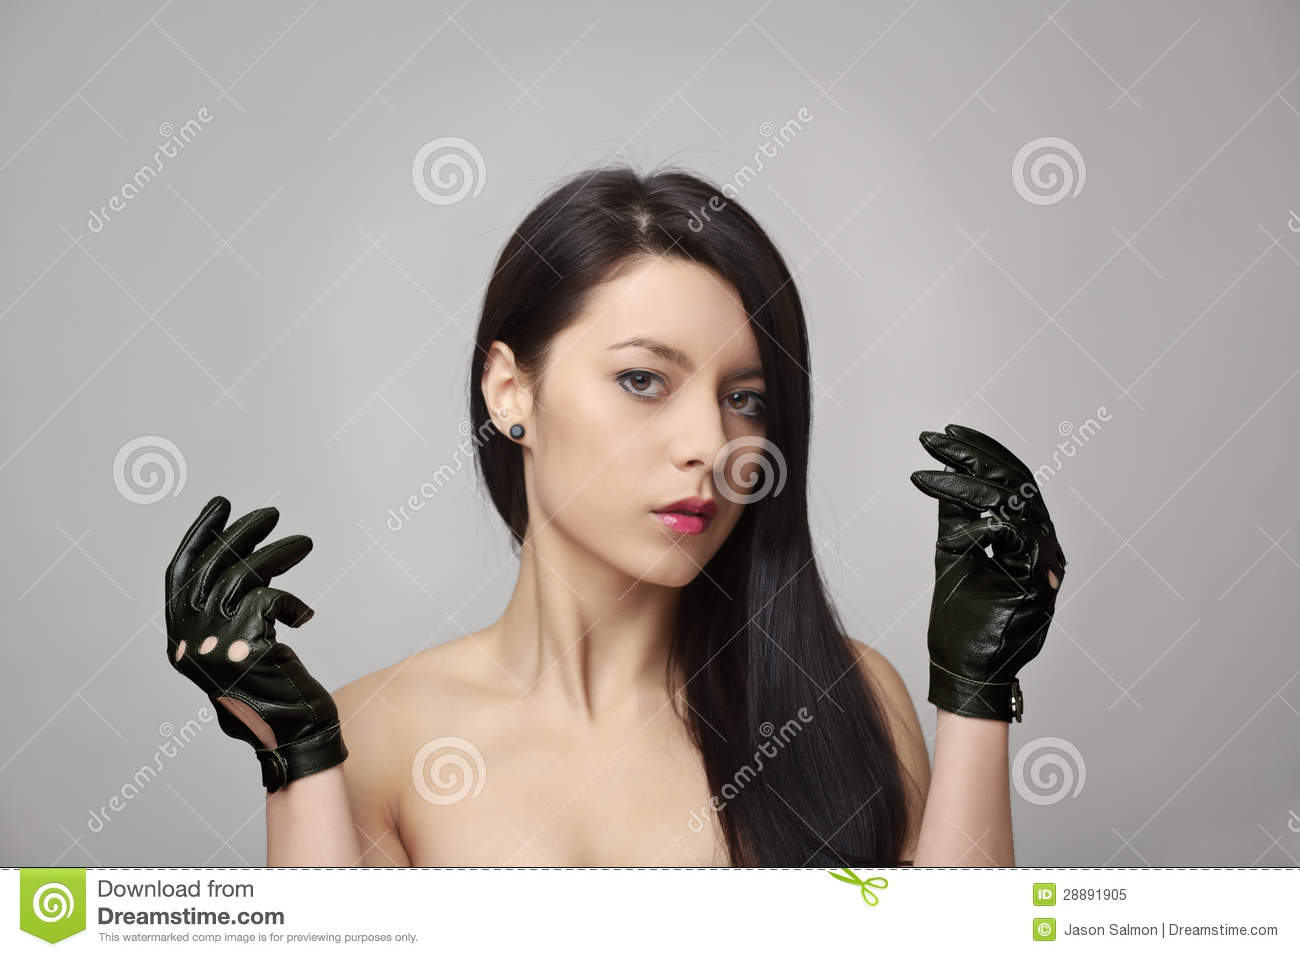 Driving gloves girl - The Girl With The Driving Gloves